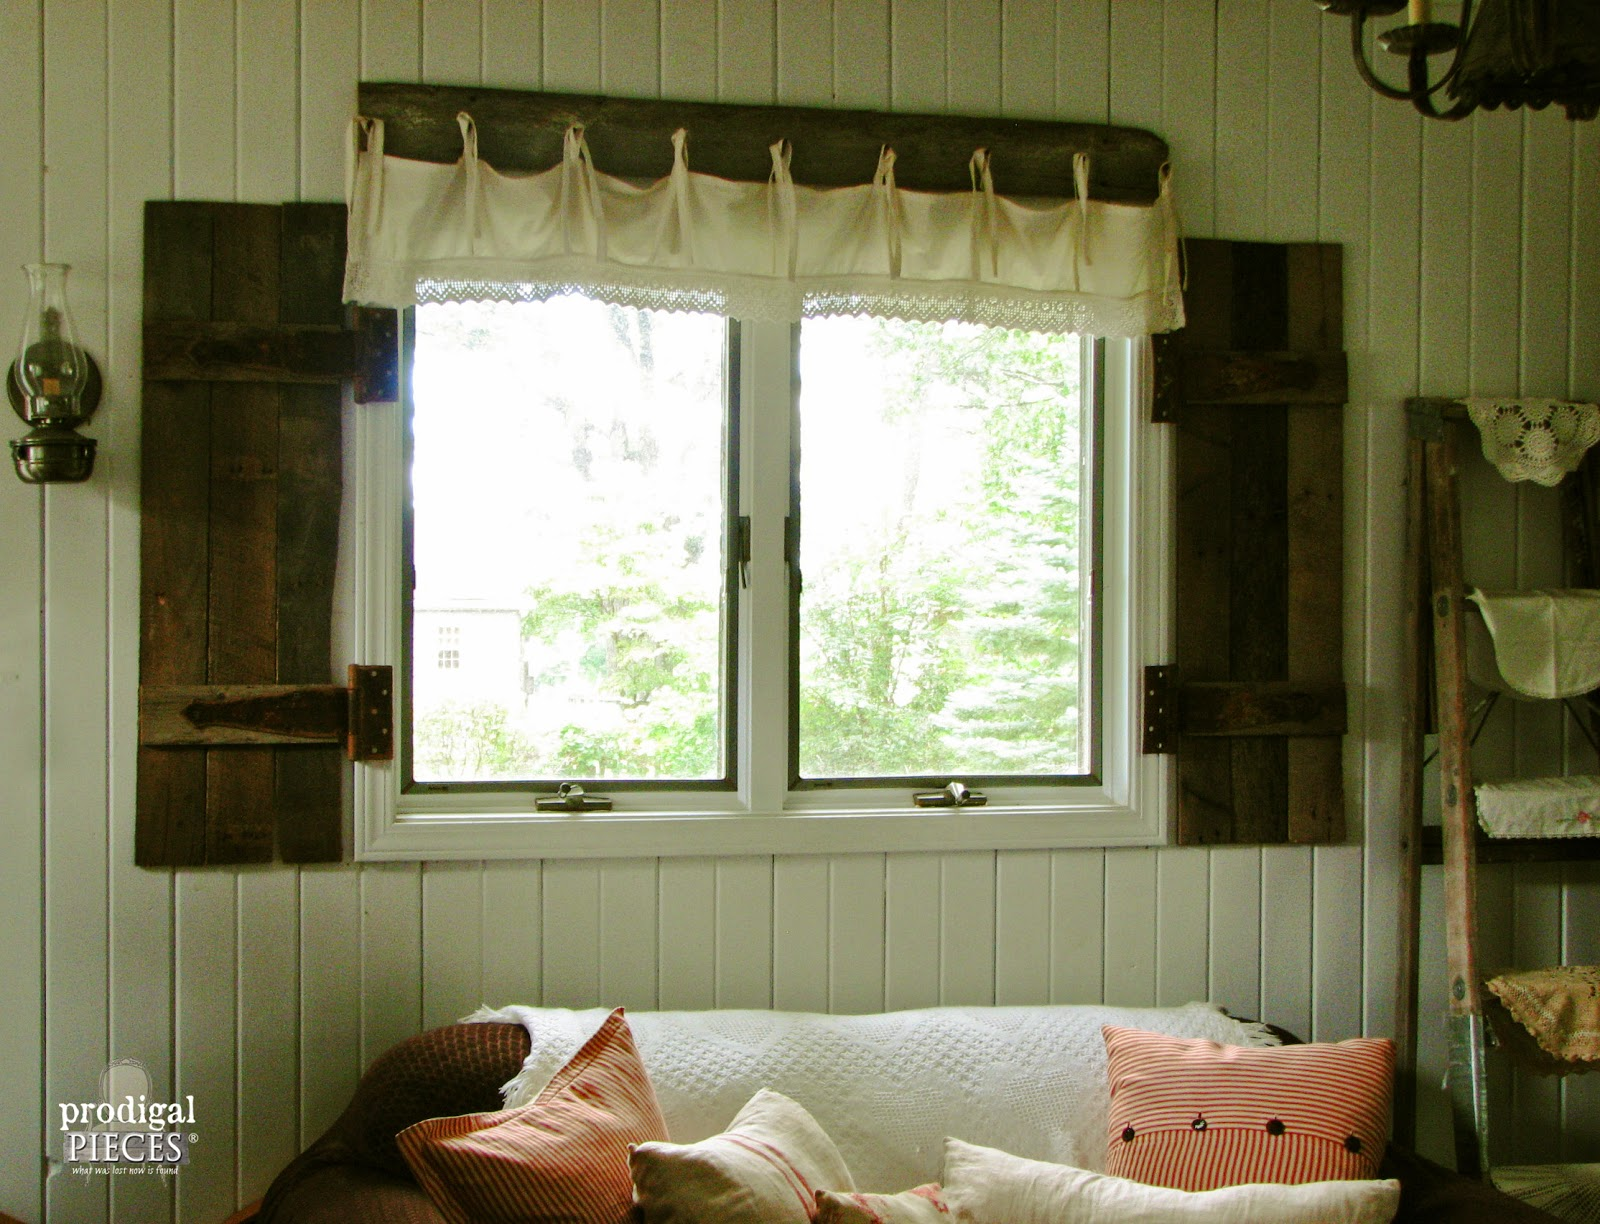 Elegant Barn Wood Shutters And Lace Valance, Prodigal Pieces On Remodelaholic